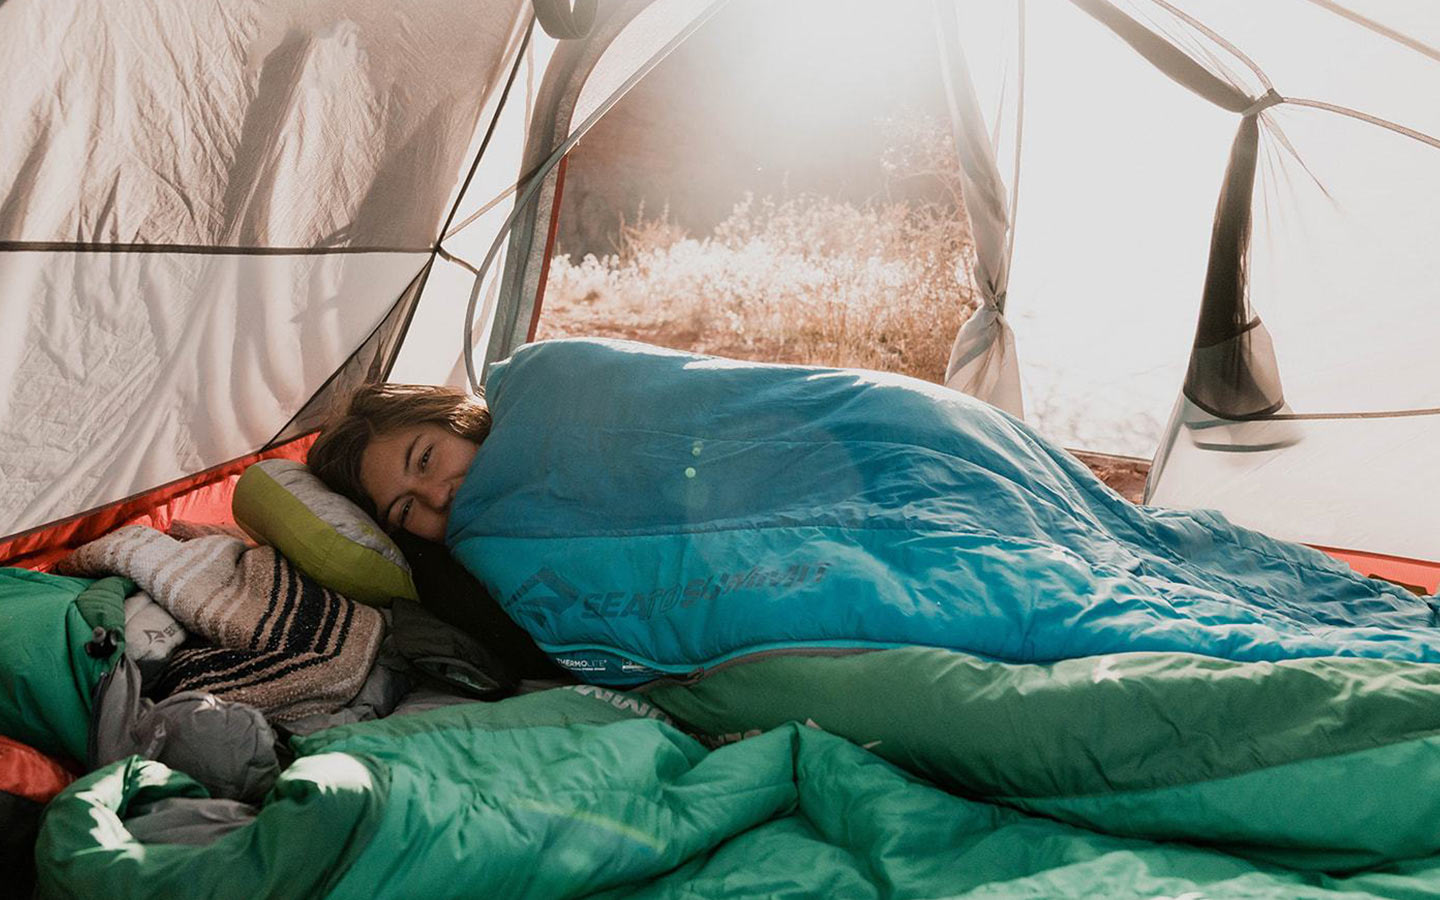 Person in a tent